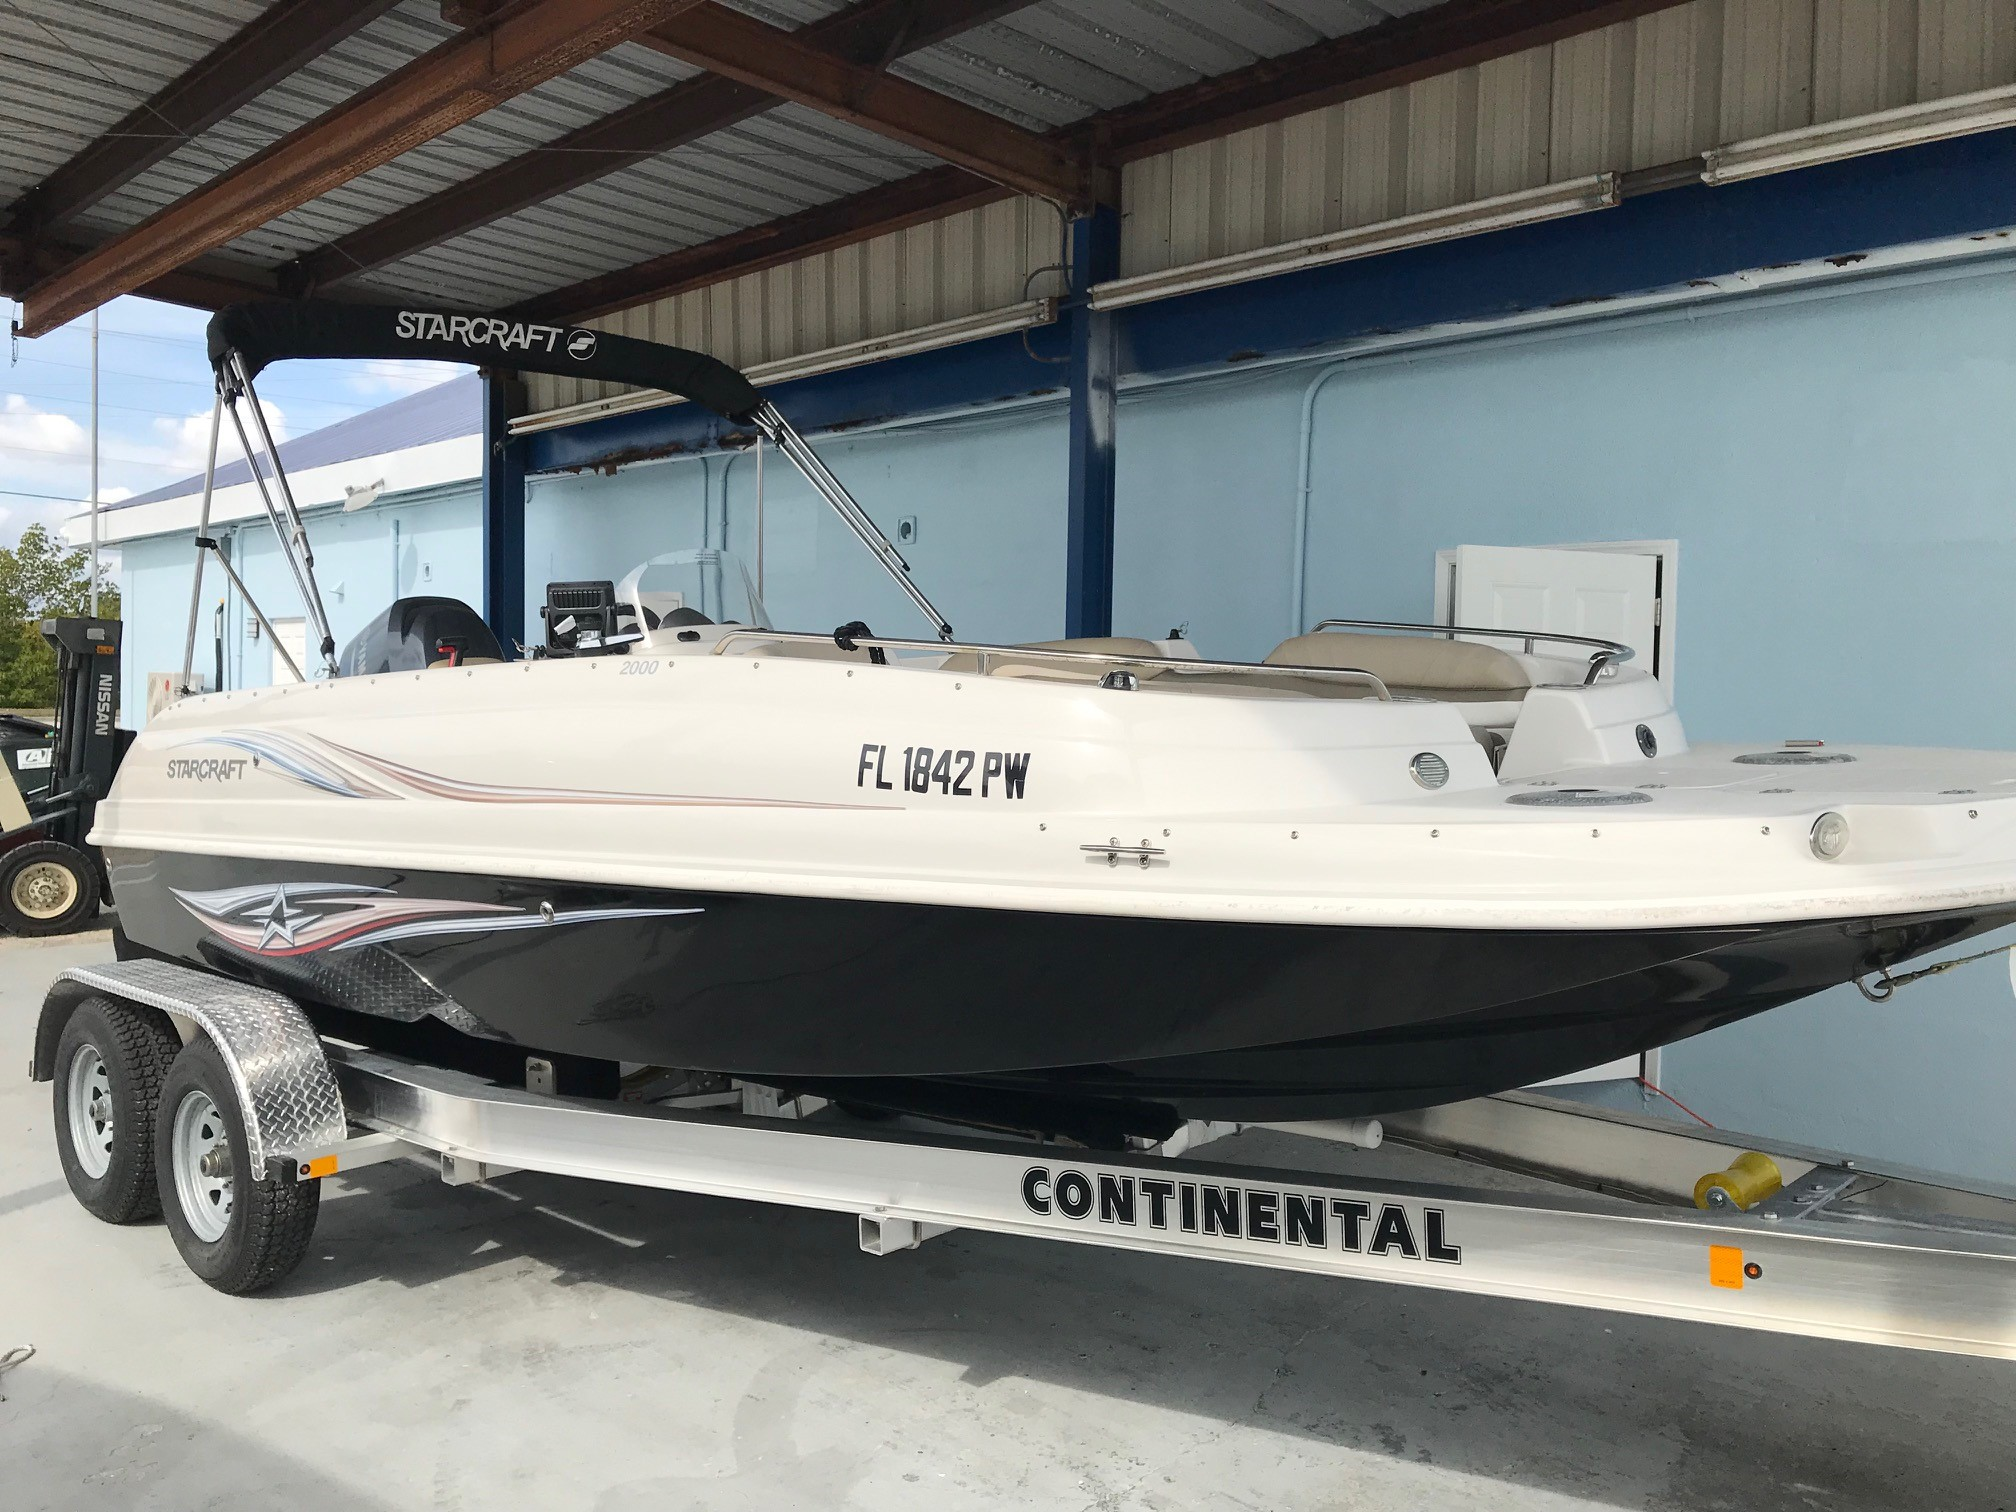 USED 2015 Starcraft Limited 2000 OB Fish - Sara Bay Marina